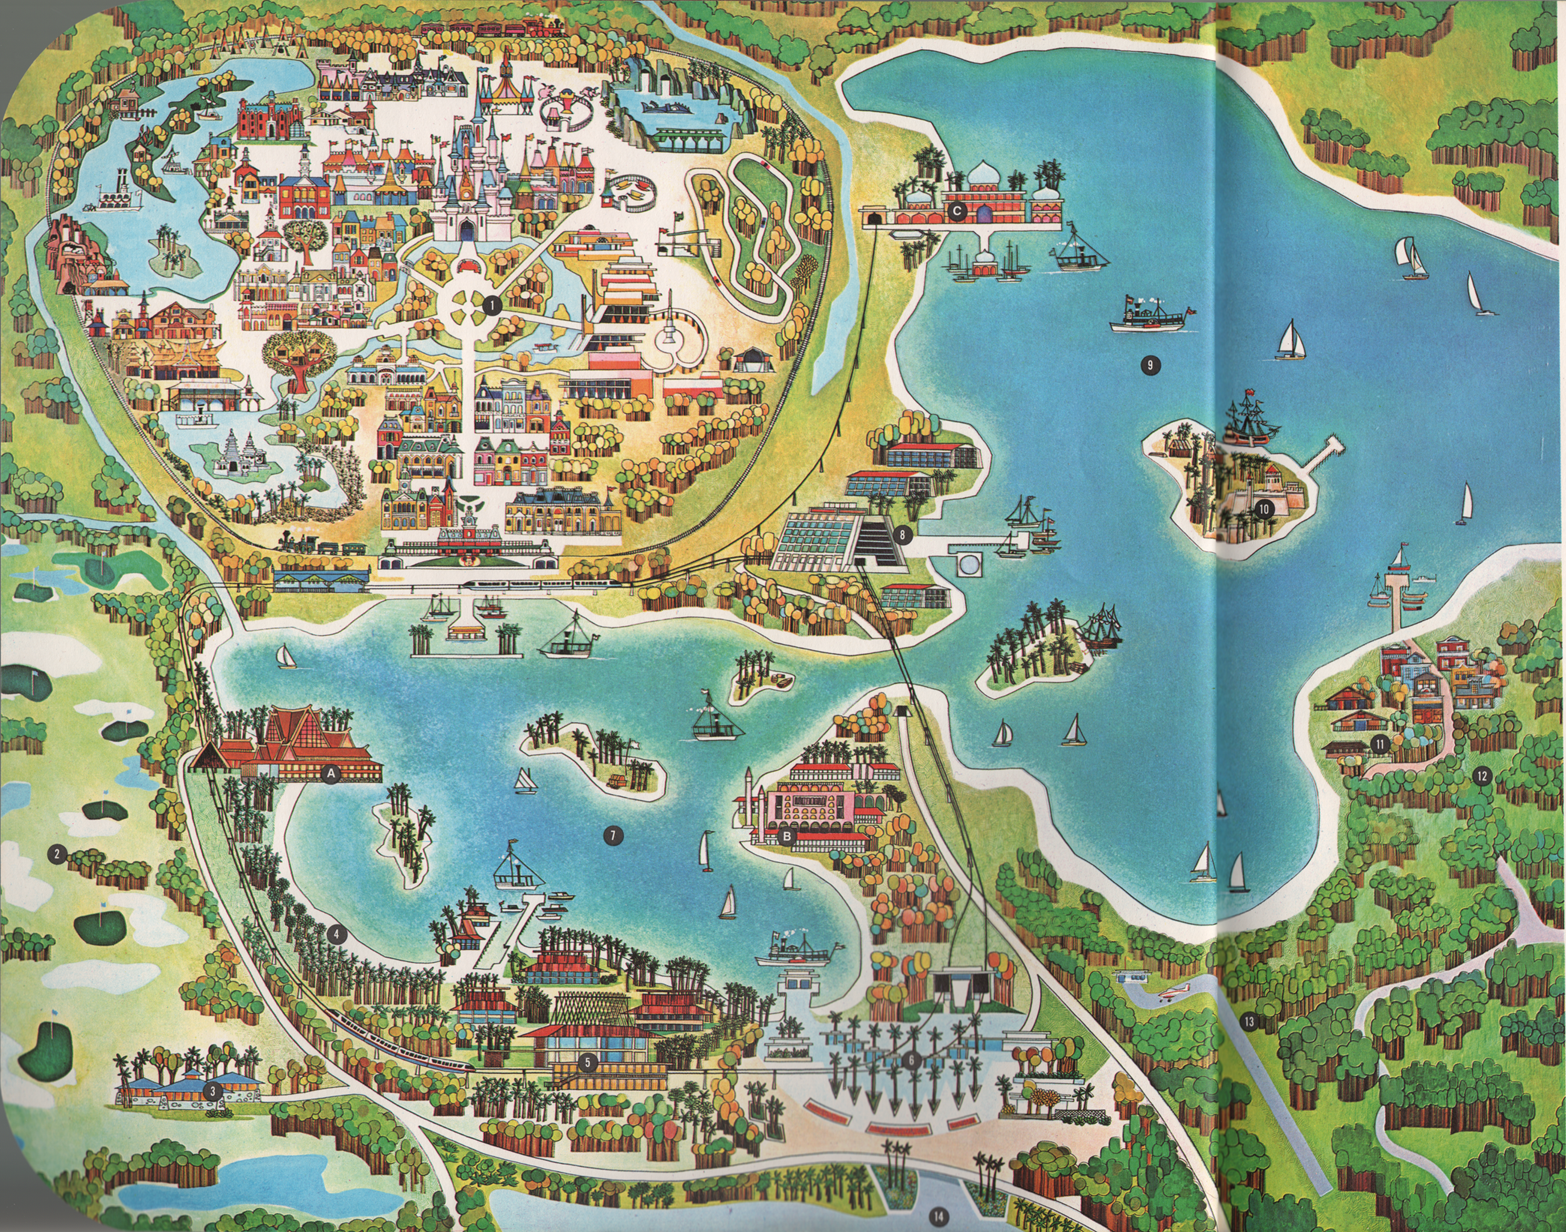 Charming The 1971 Walt Disney World Map: A Detailed Look At Bay Lake